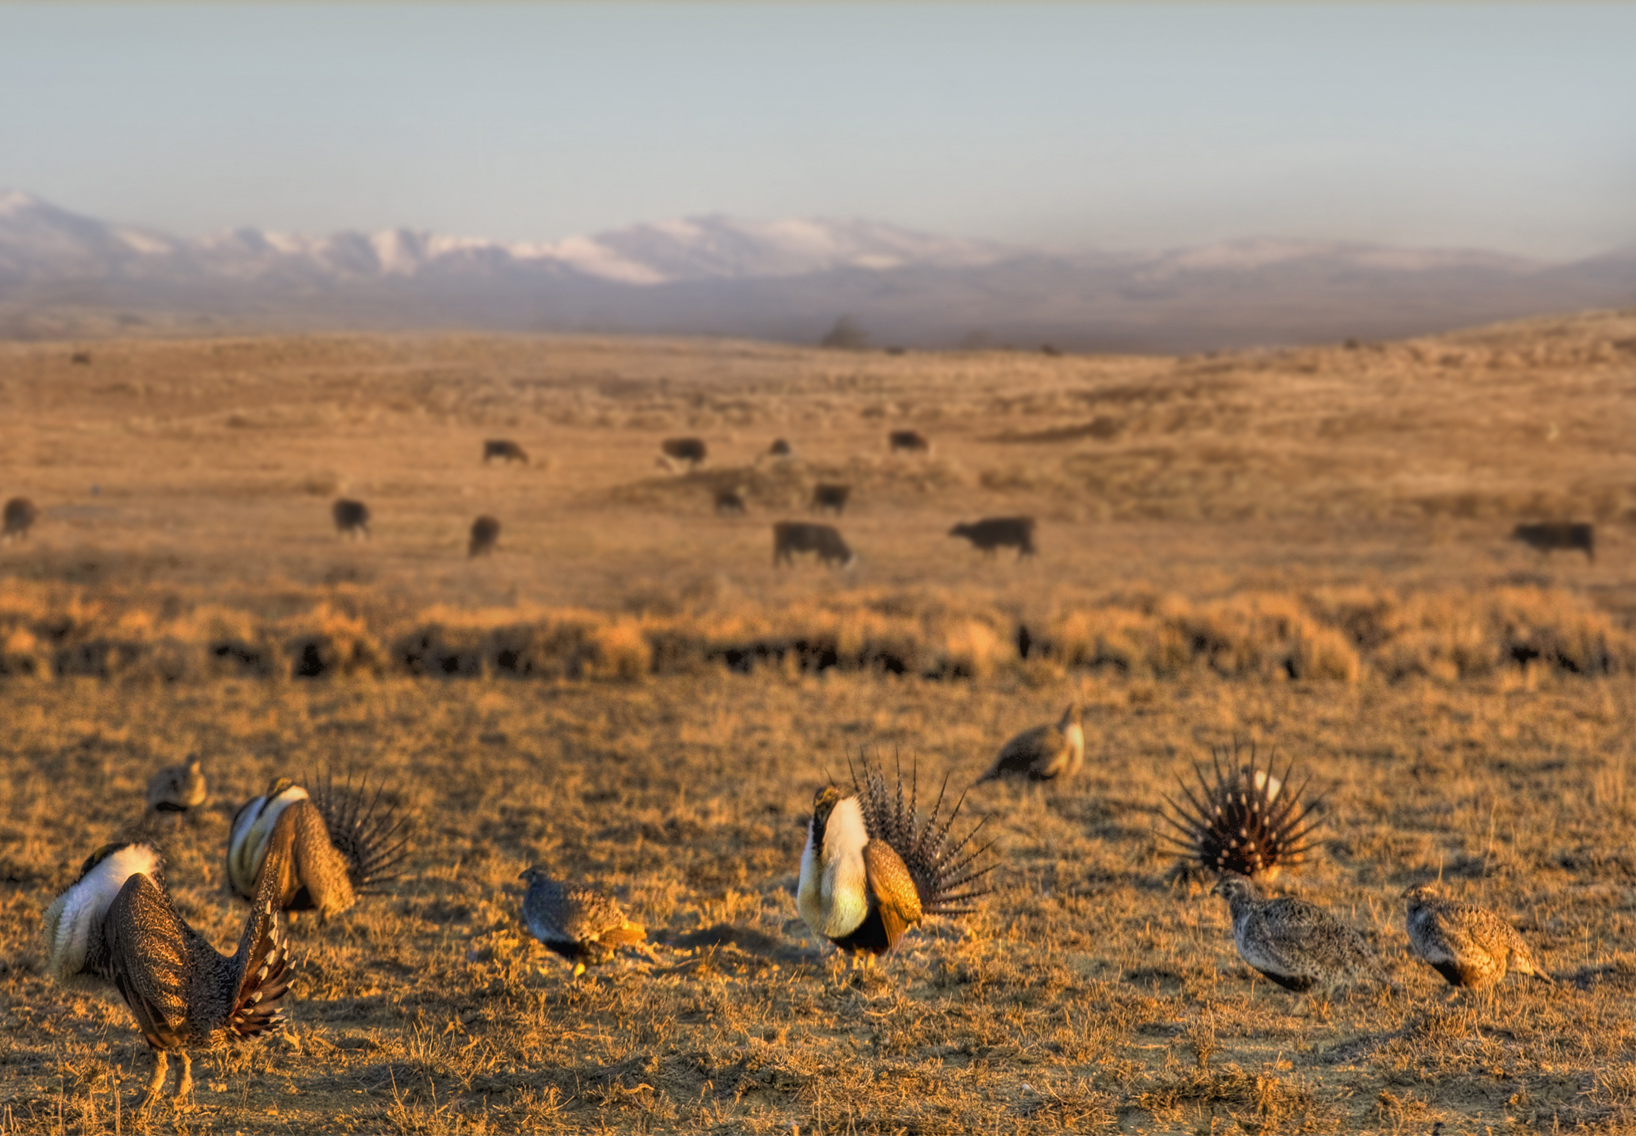 The greater sage grouse thrives in the sagebrush landscape of the West. NRCS photo.